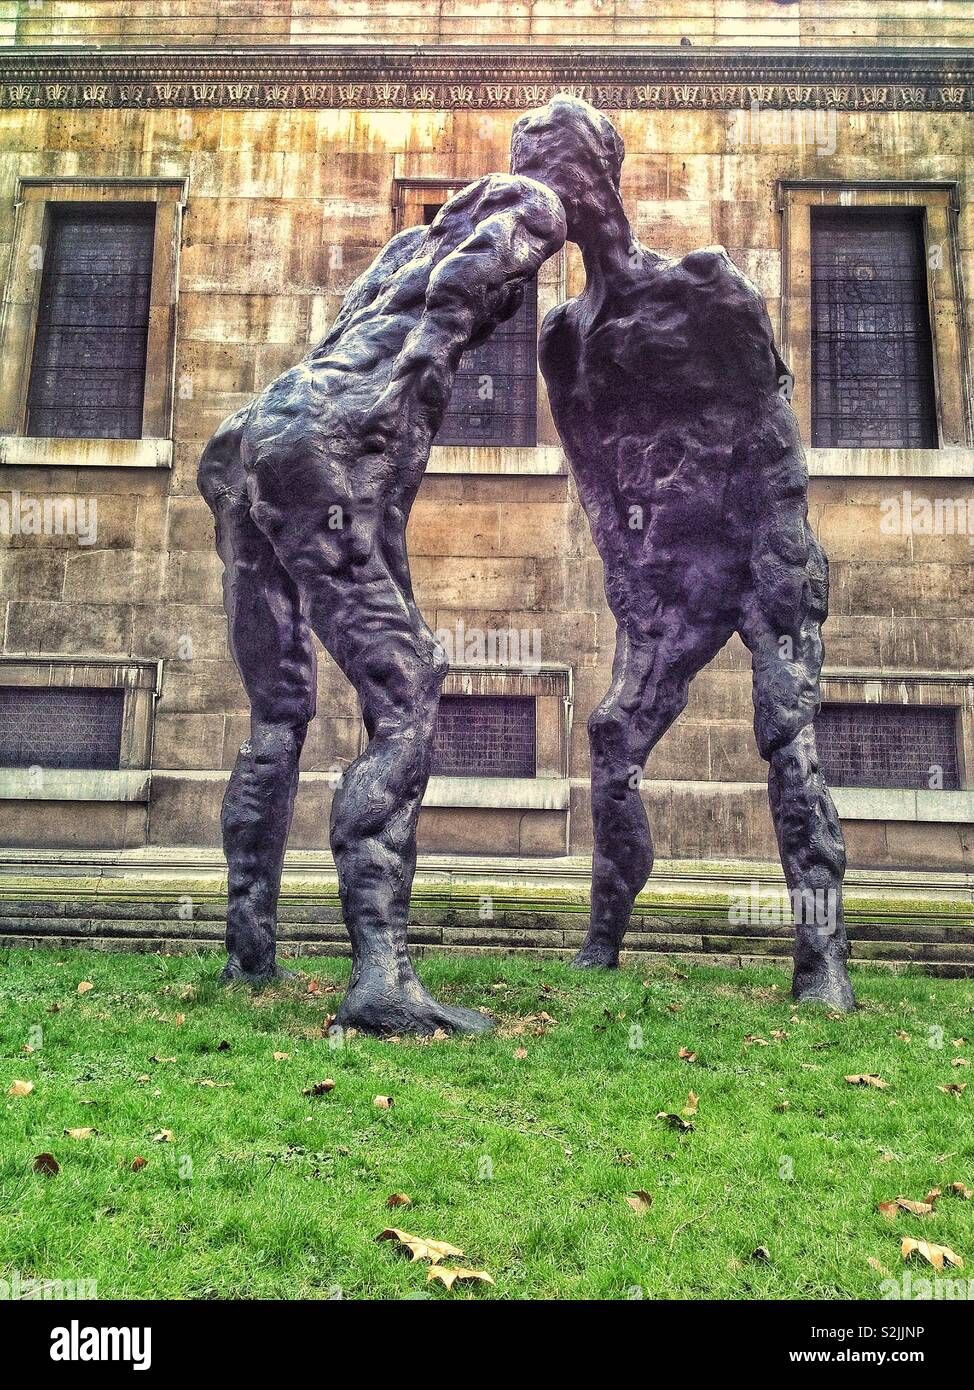 The 6 metre high modern sculpture, 'Alien', by David Breuer-Weil, in St Pancras church gardens, London, England, UK. - Stock Image